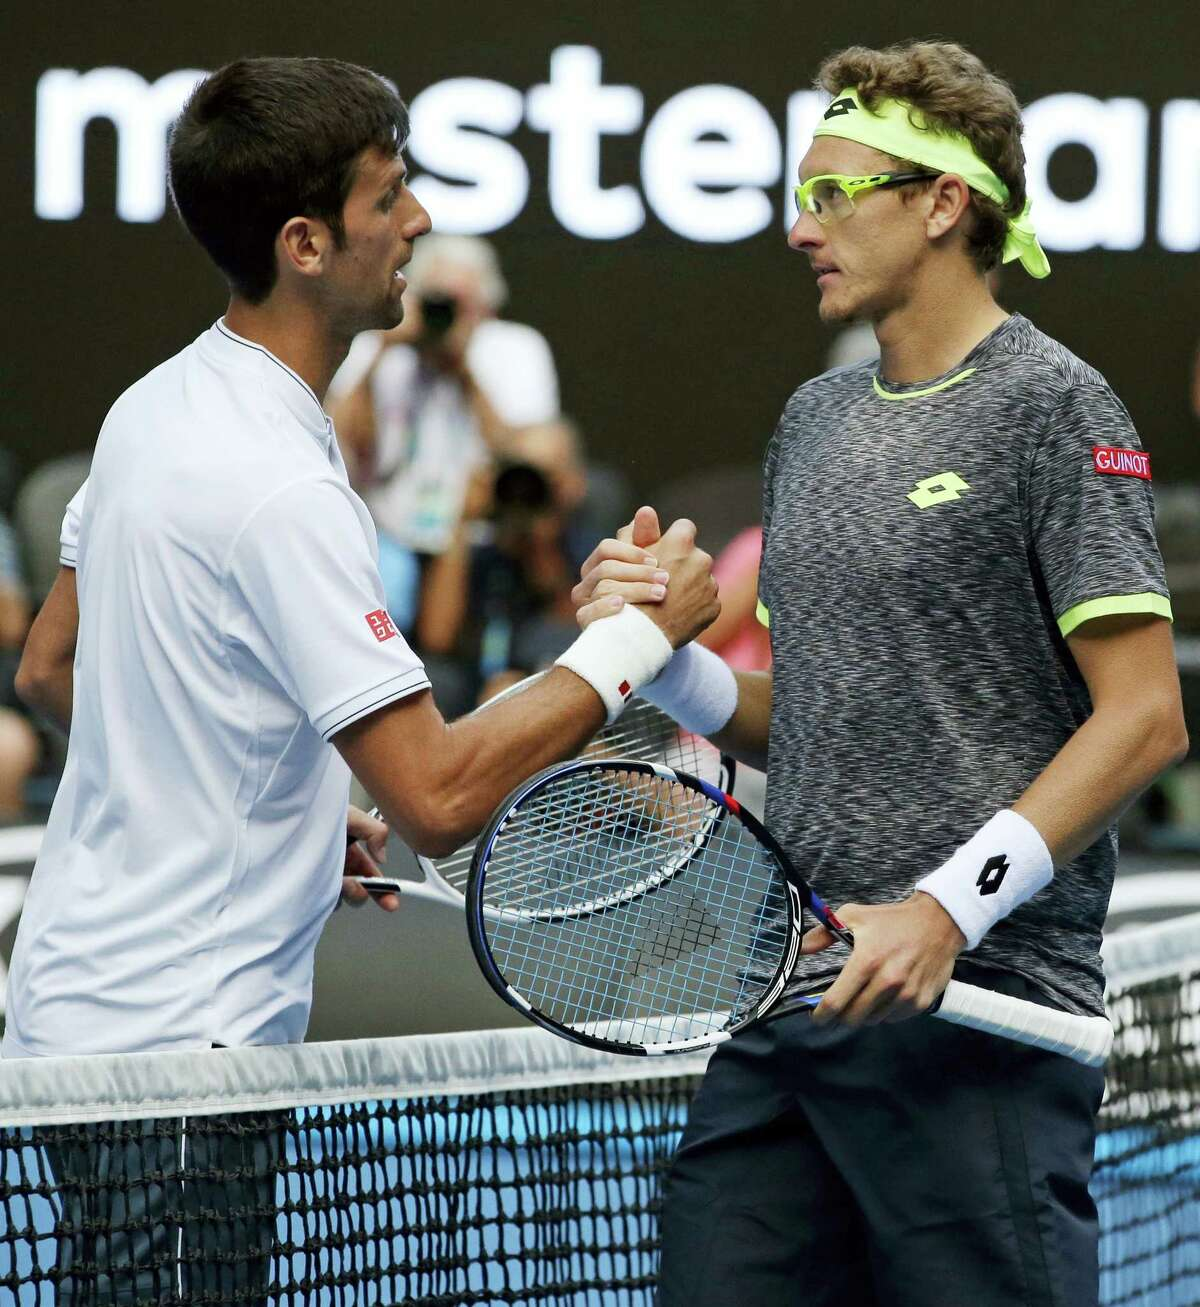 Uzbekistan's Denis Istomin, right, is congratulated by Serbia's Novak Djokovic after winning their second round match at the Australian Open tennis championships in Melbourne, Australia on Jan. 19, 2017.